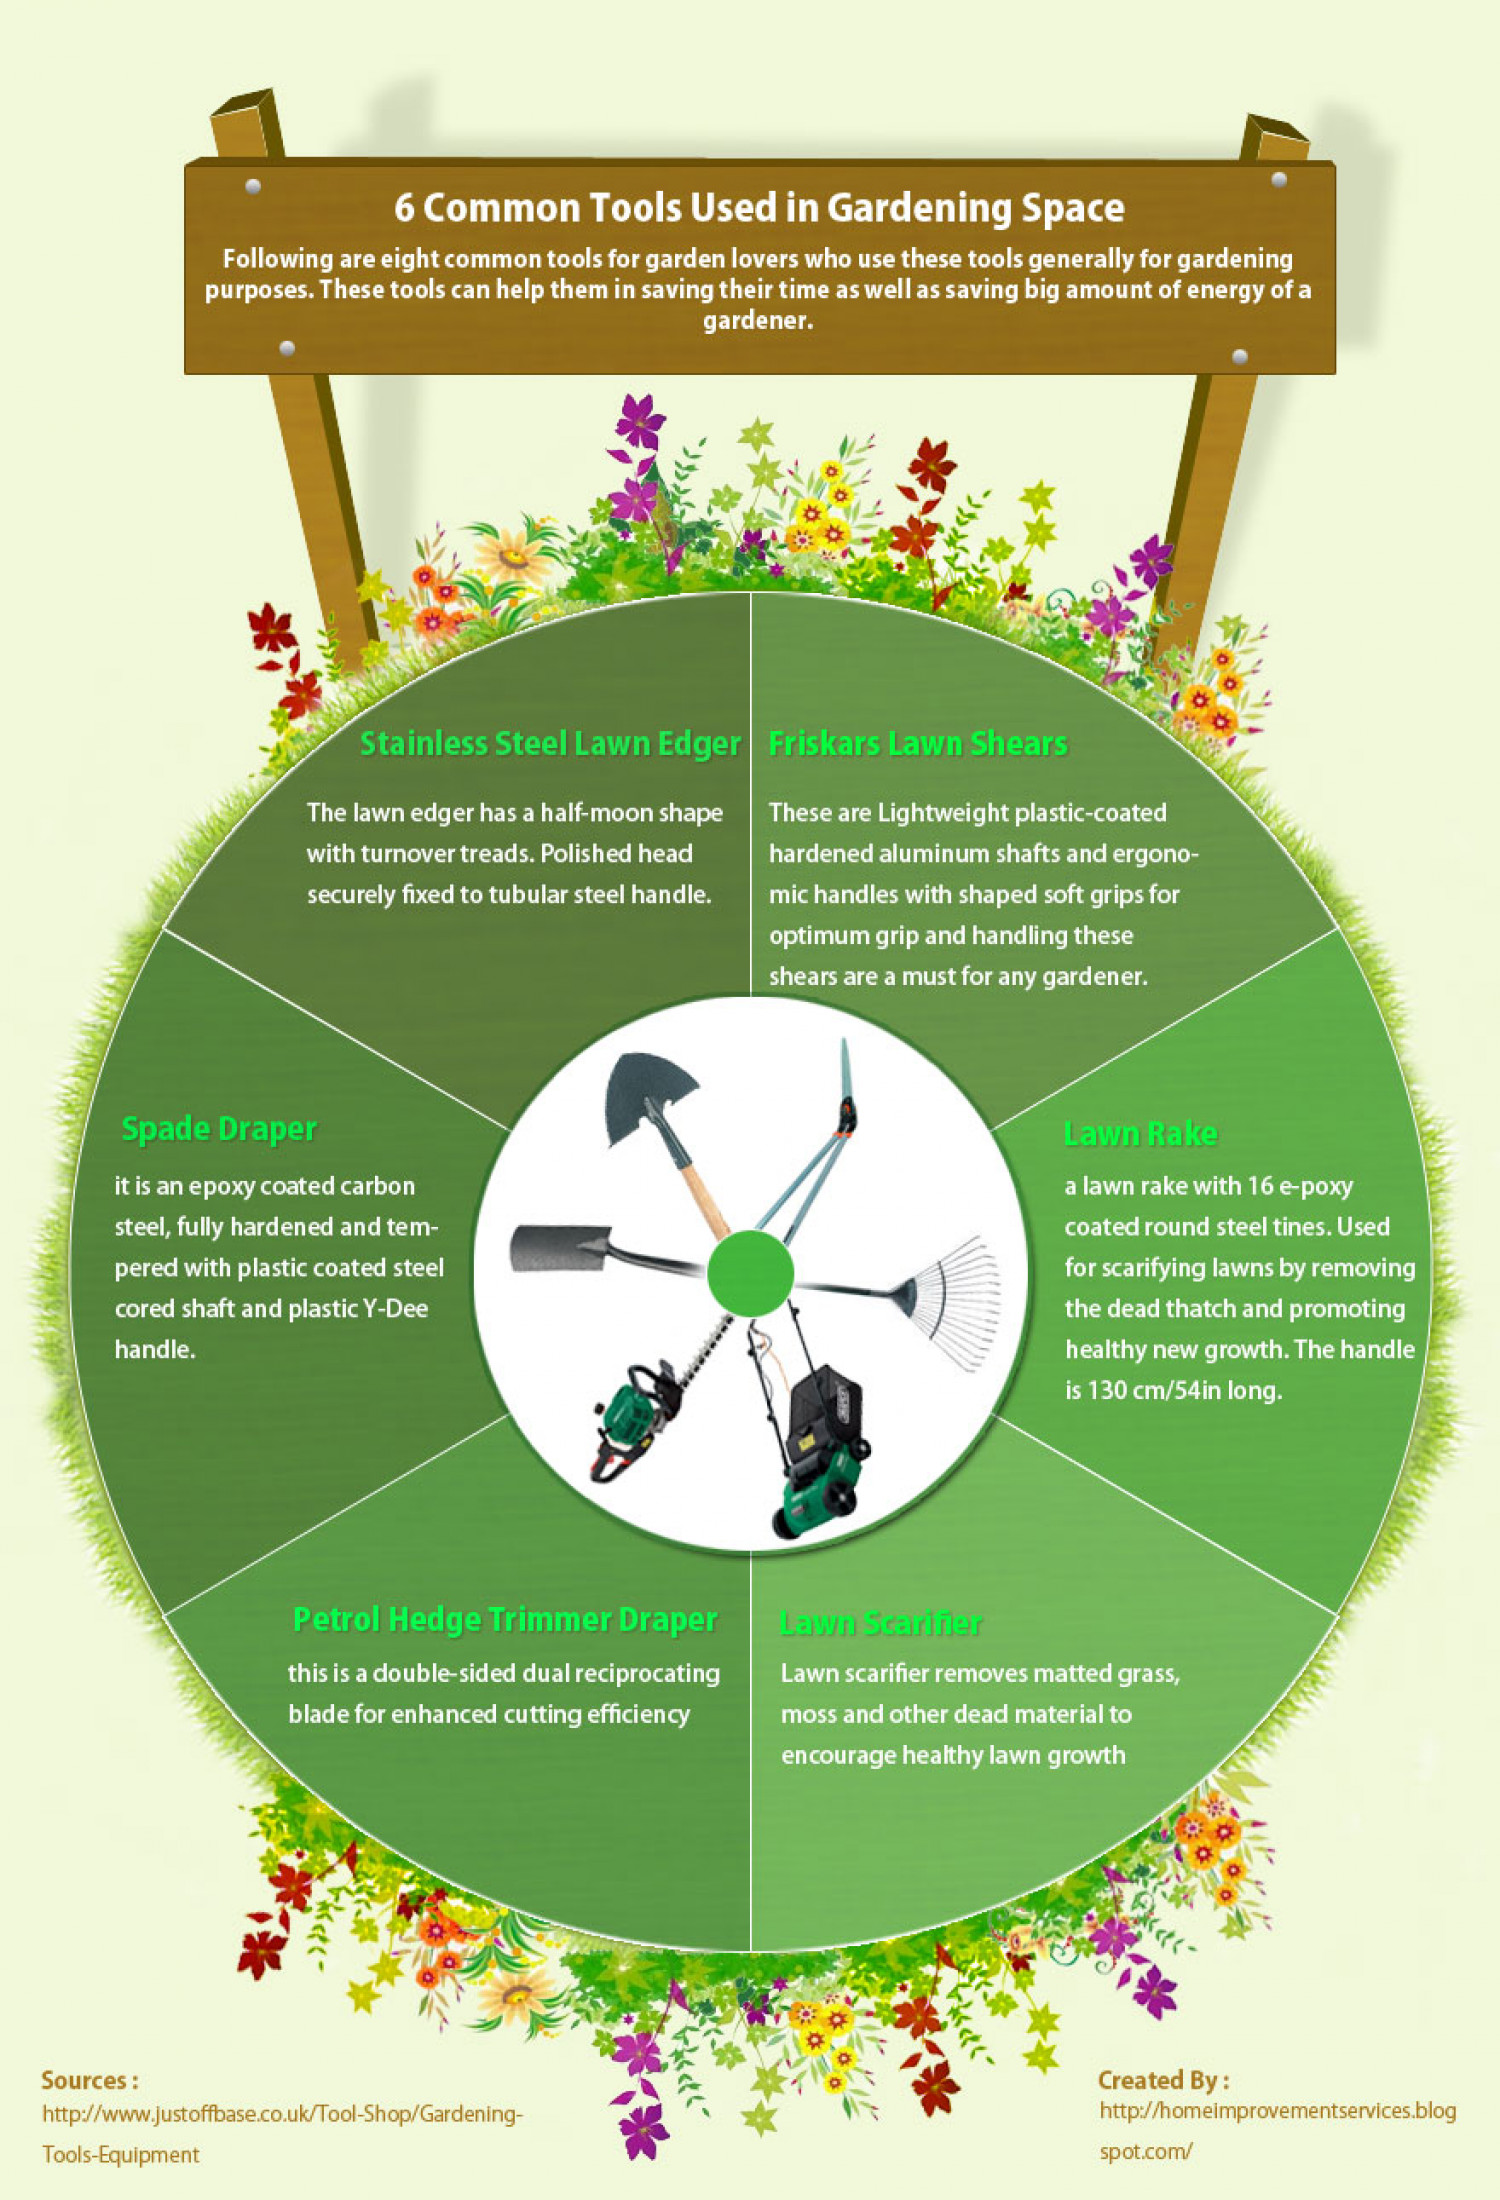 6 Common Tools Used in Gardening Space [Infographic] Infographic